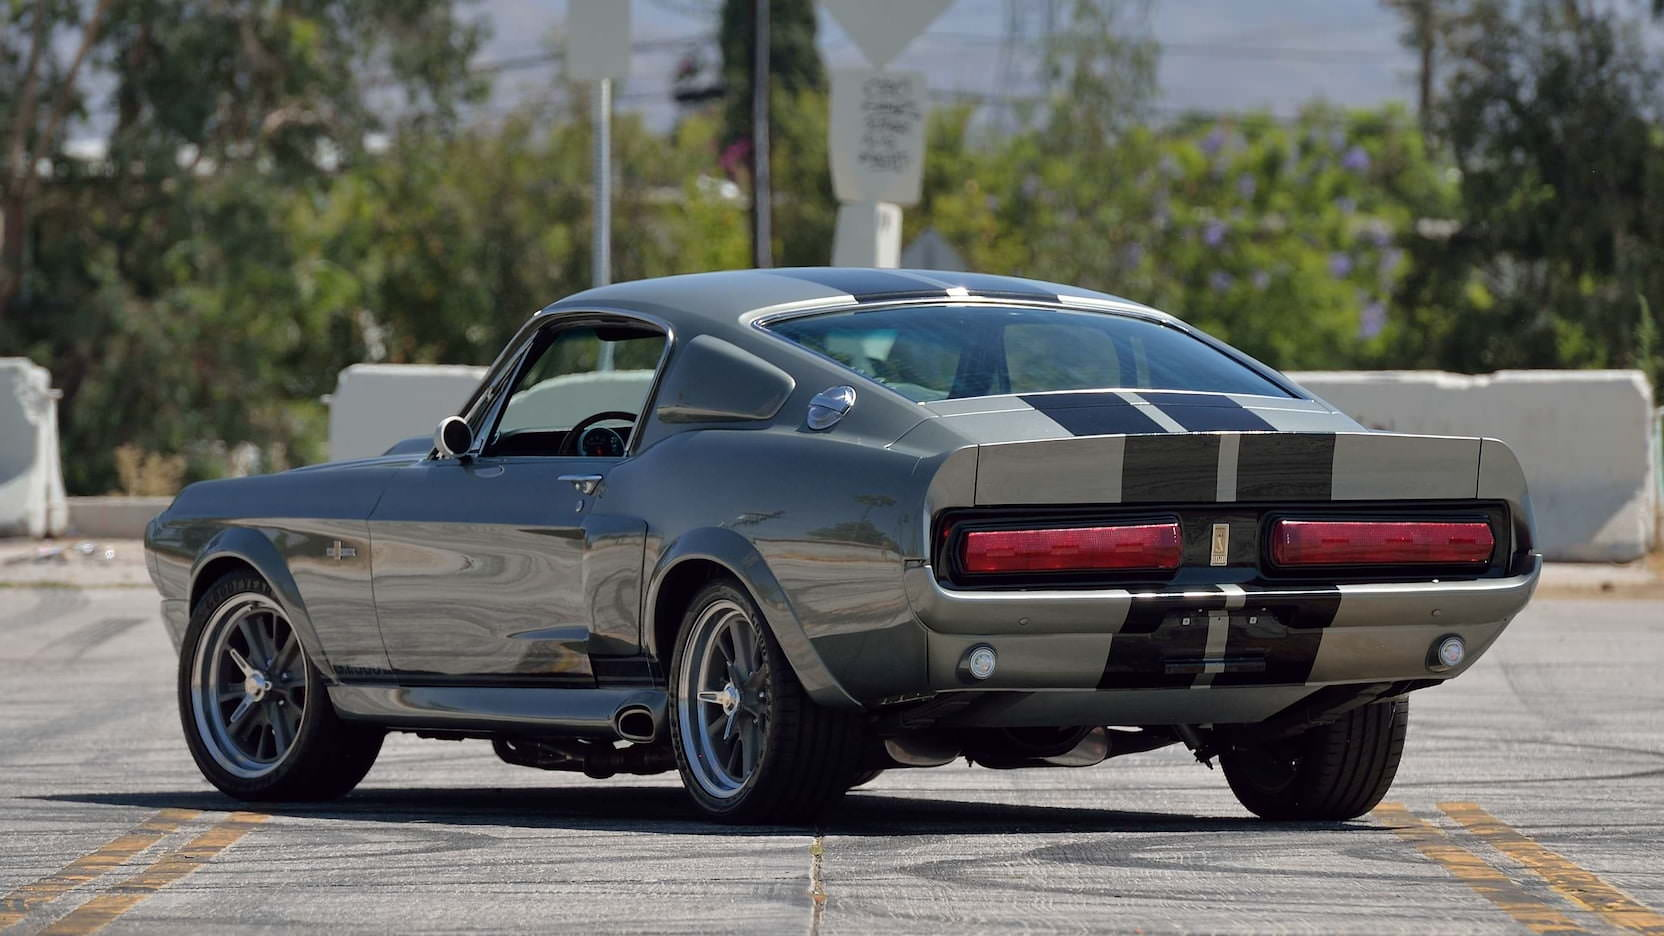 Ford Mustang Shelby Gt500 Eleanor 1967 Olx